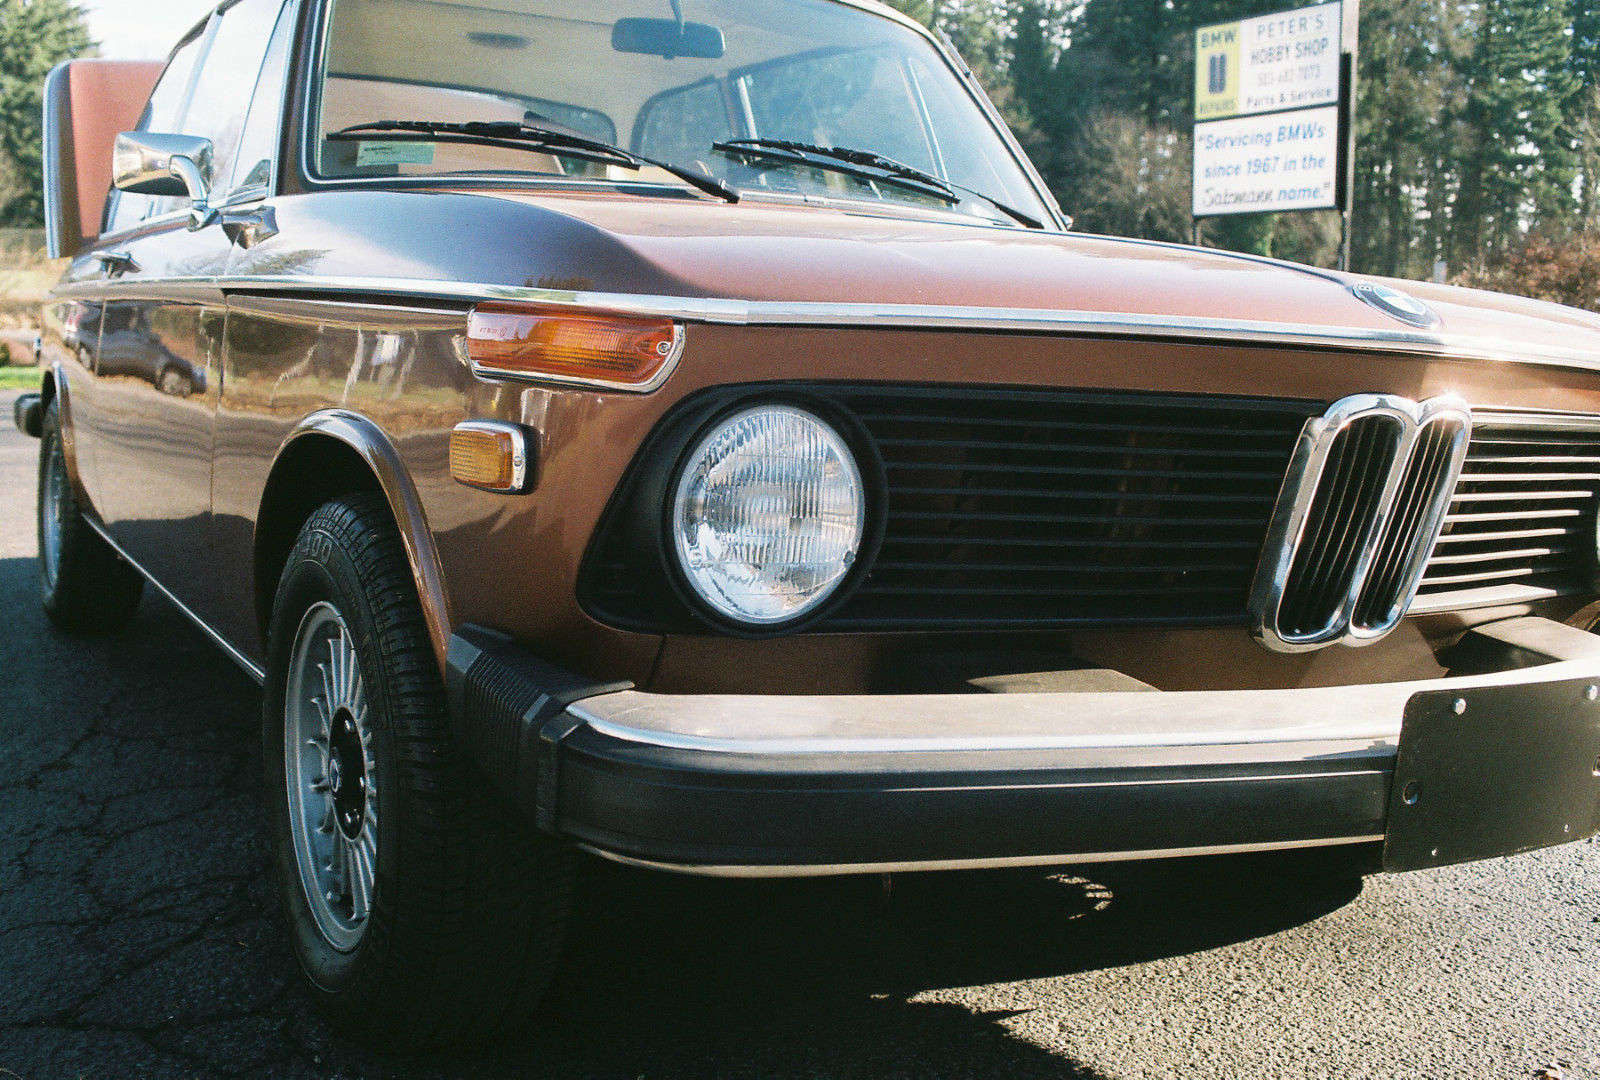 1974 Green BMW 2002 Coupe with Tan interior